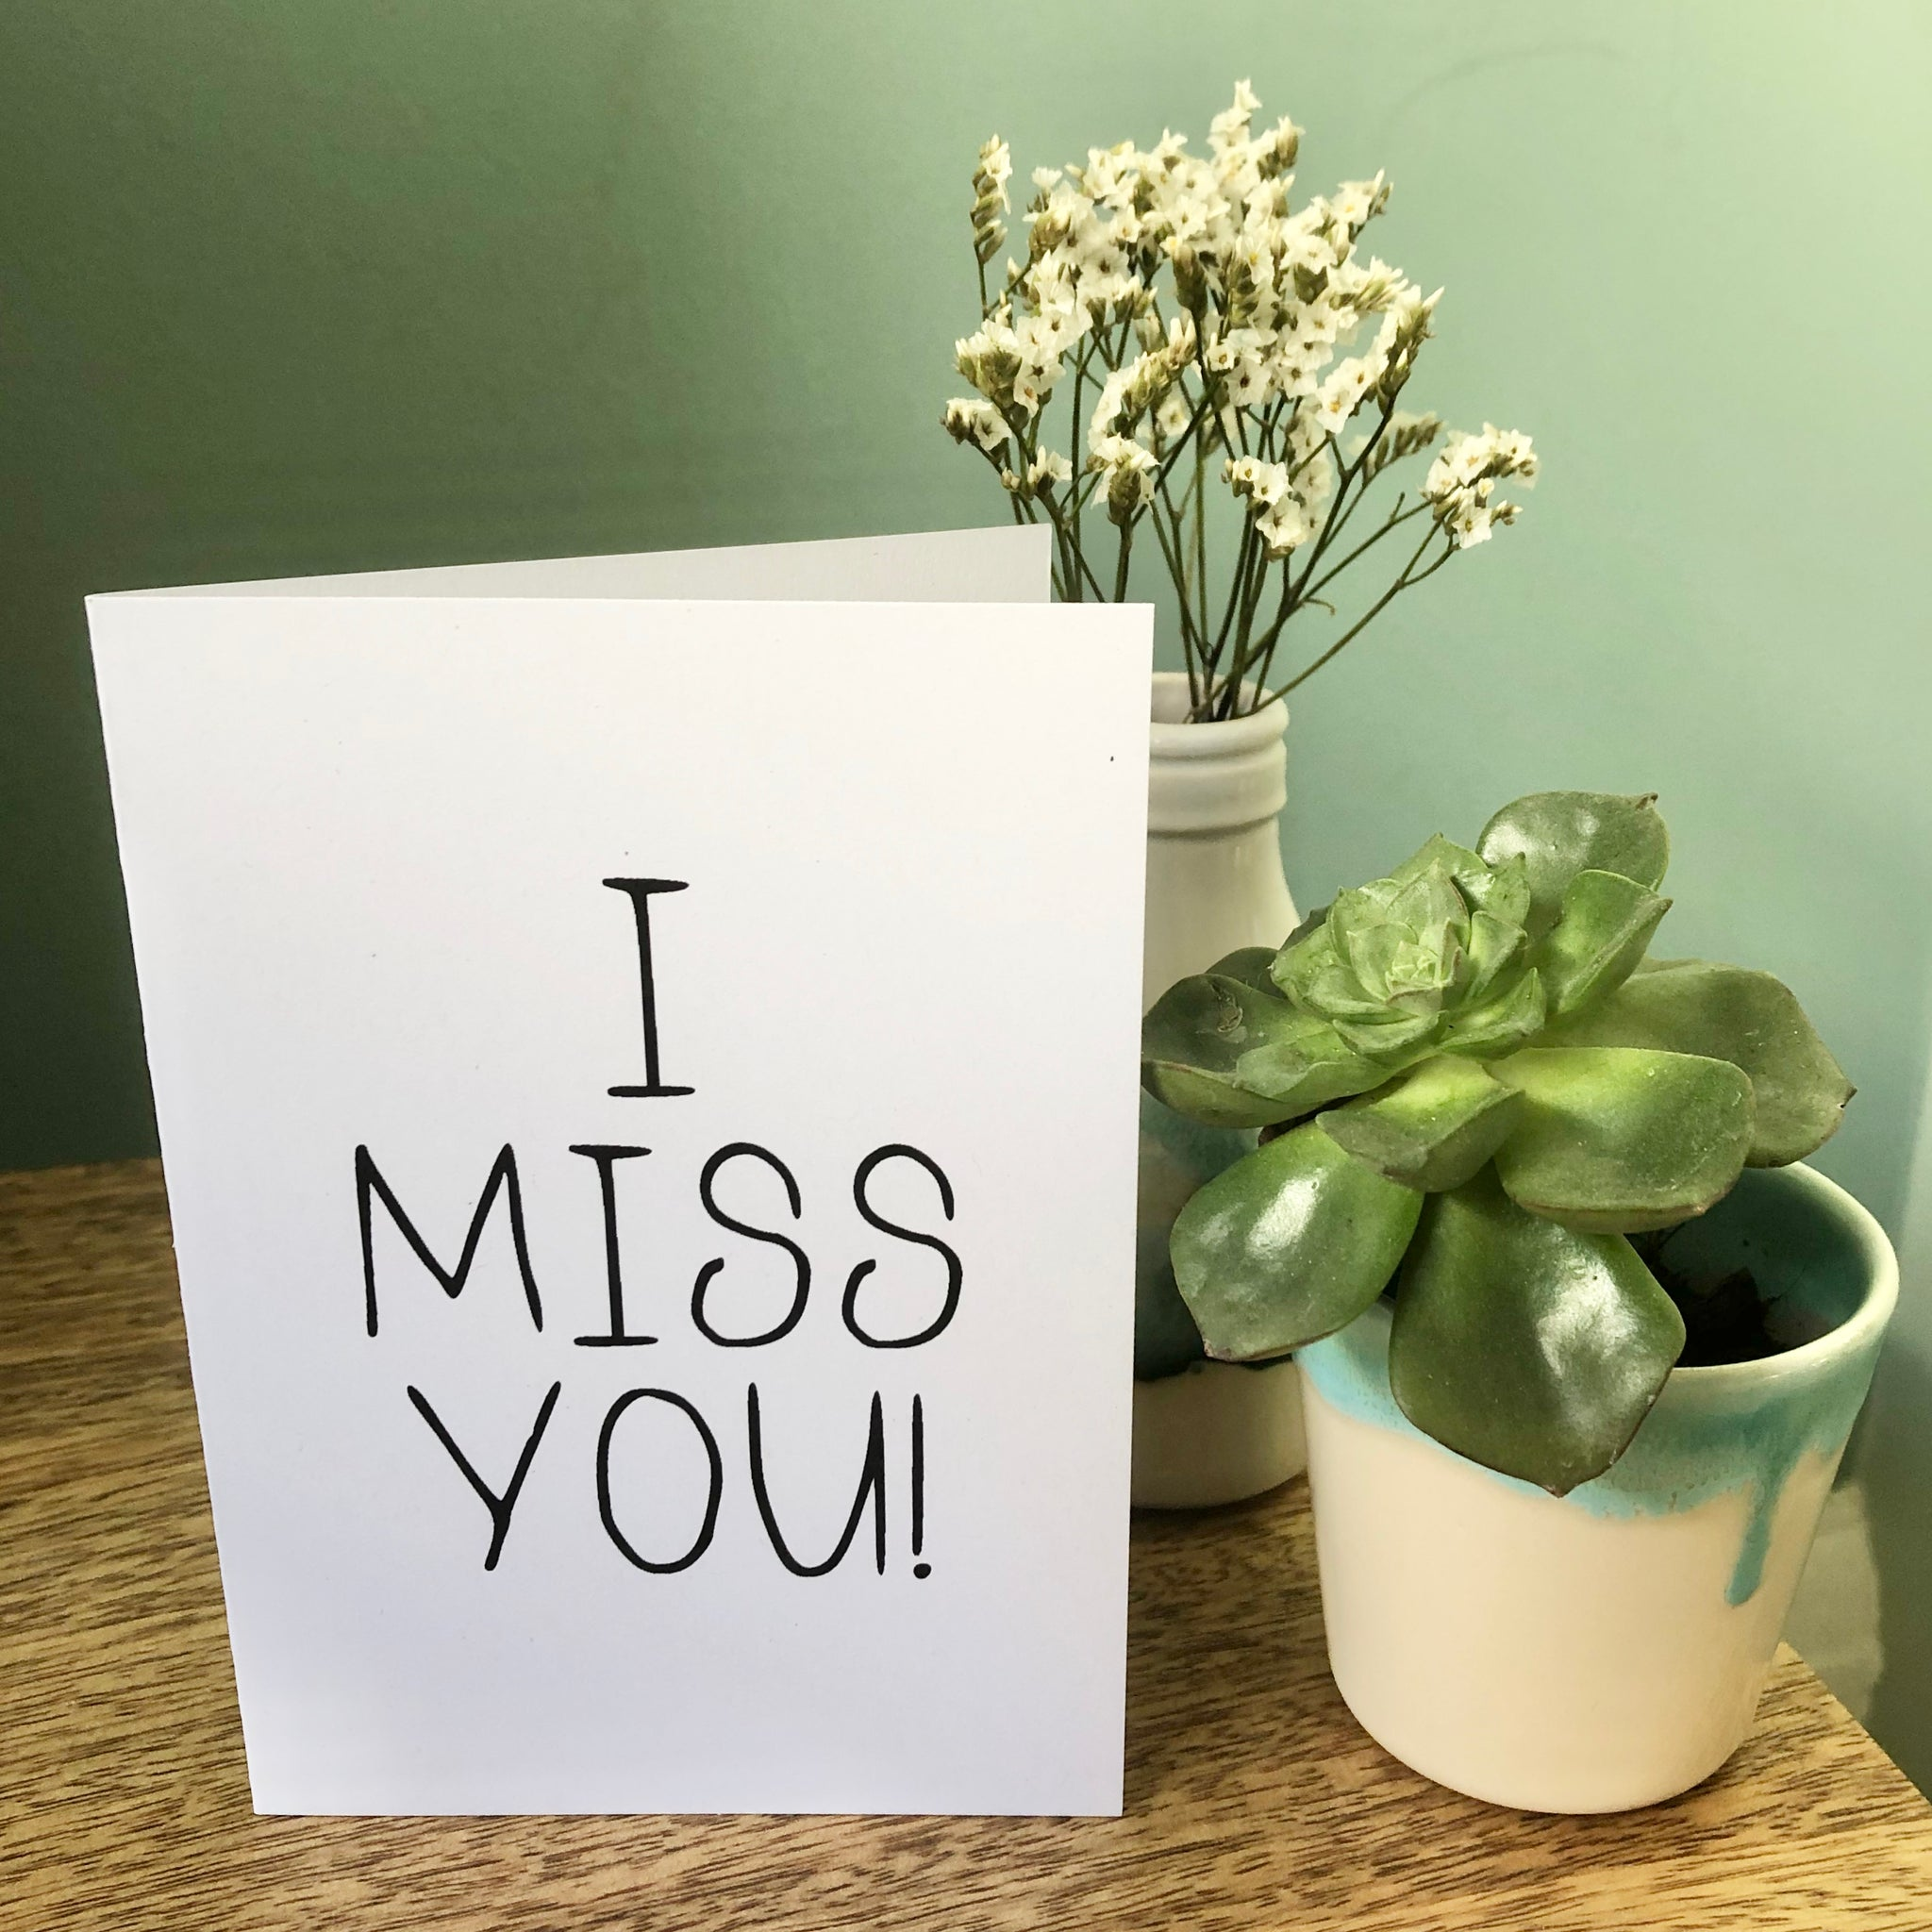 'I Miss You' Card